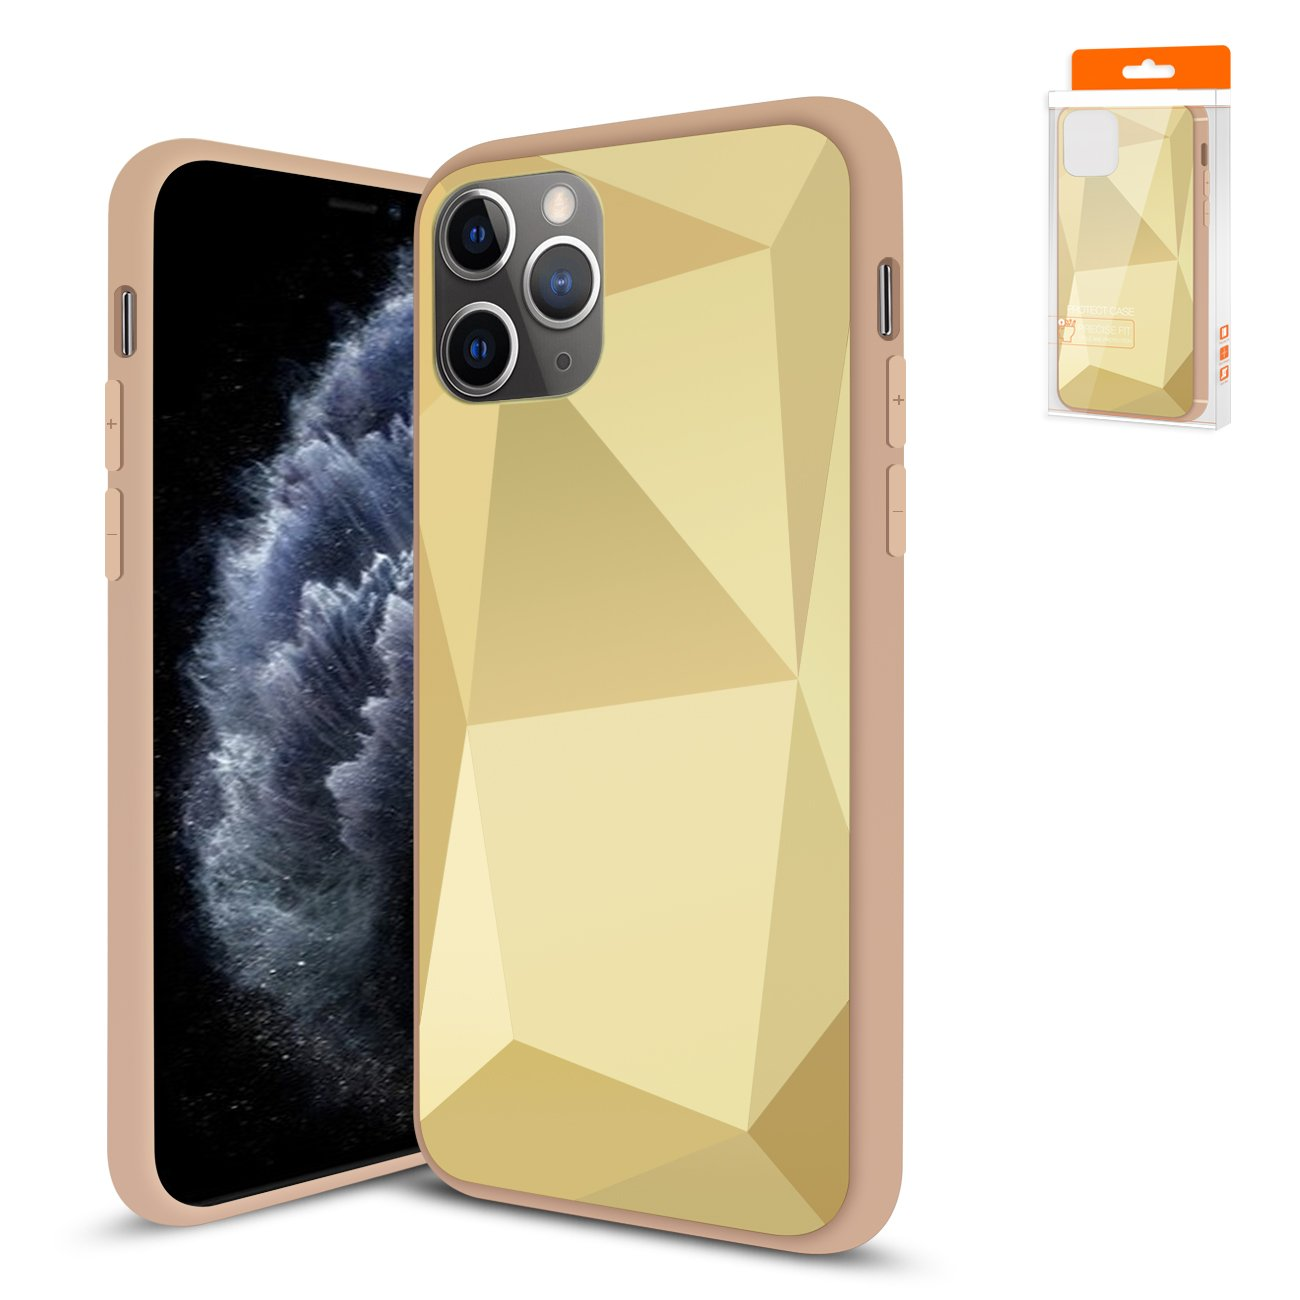 Reiko Apple iPhone 11 Pro Apple Diamond Cases In Gold